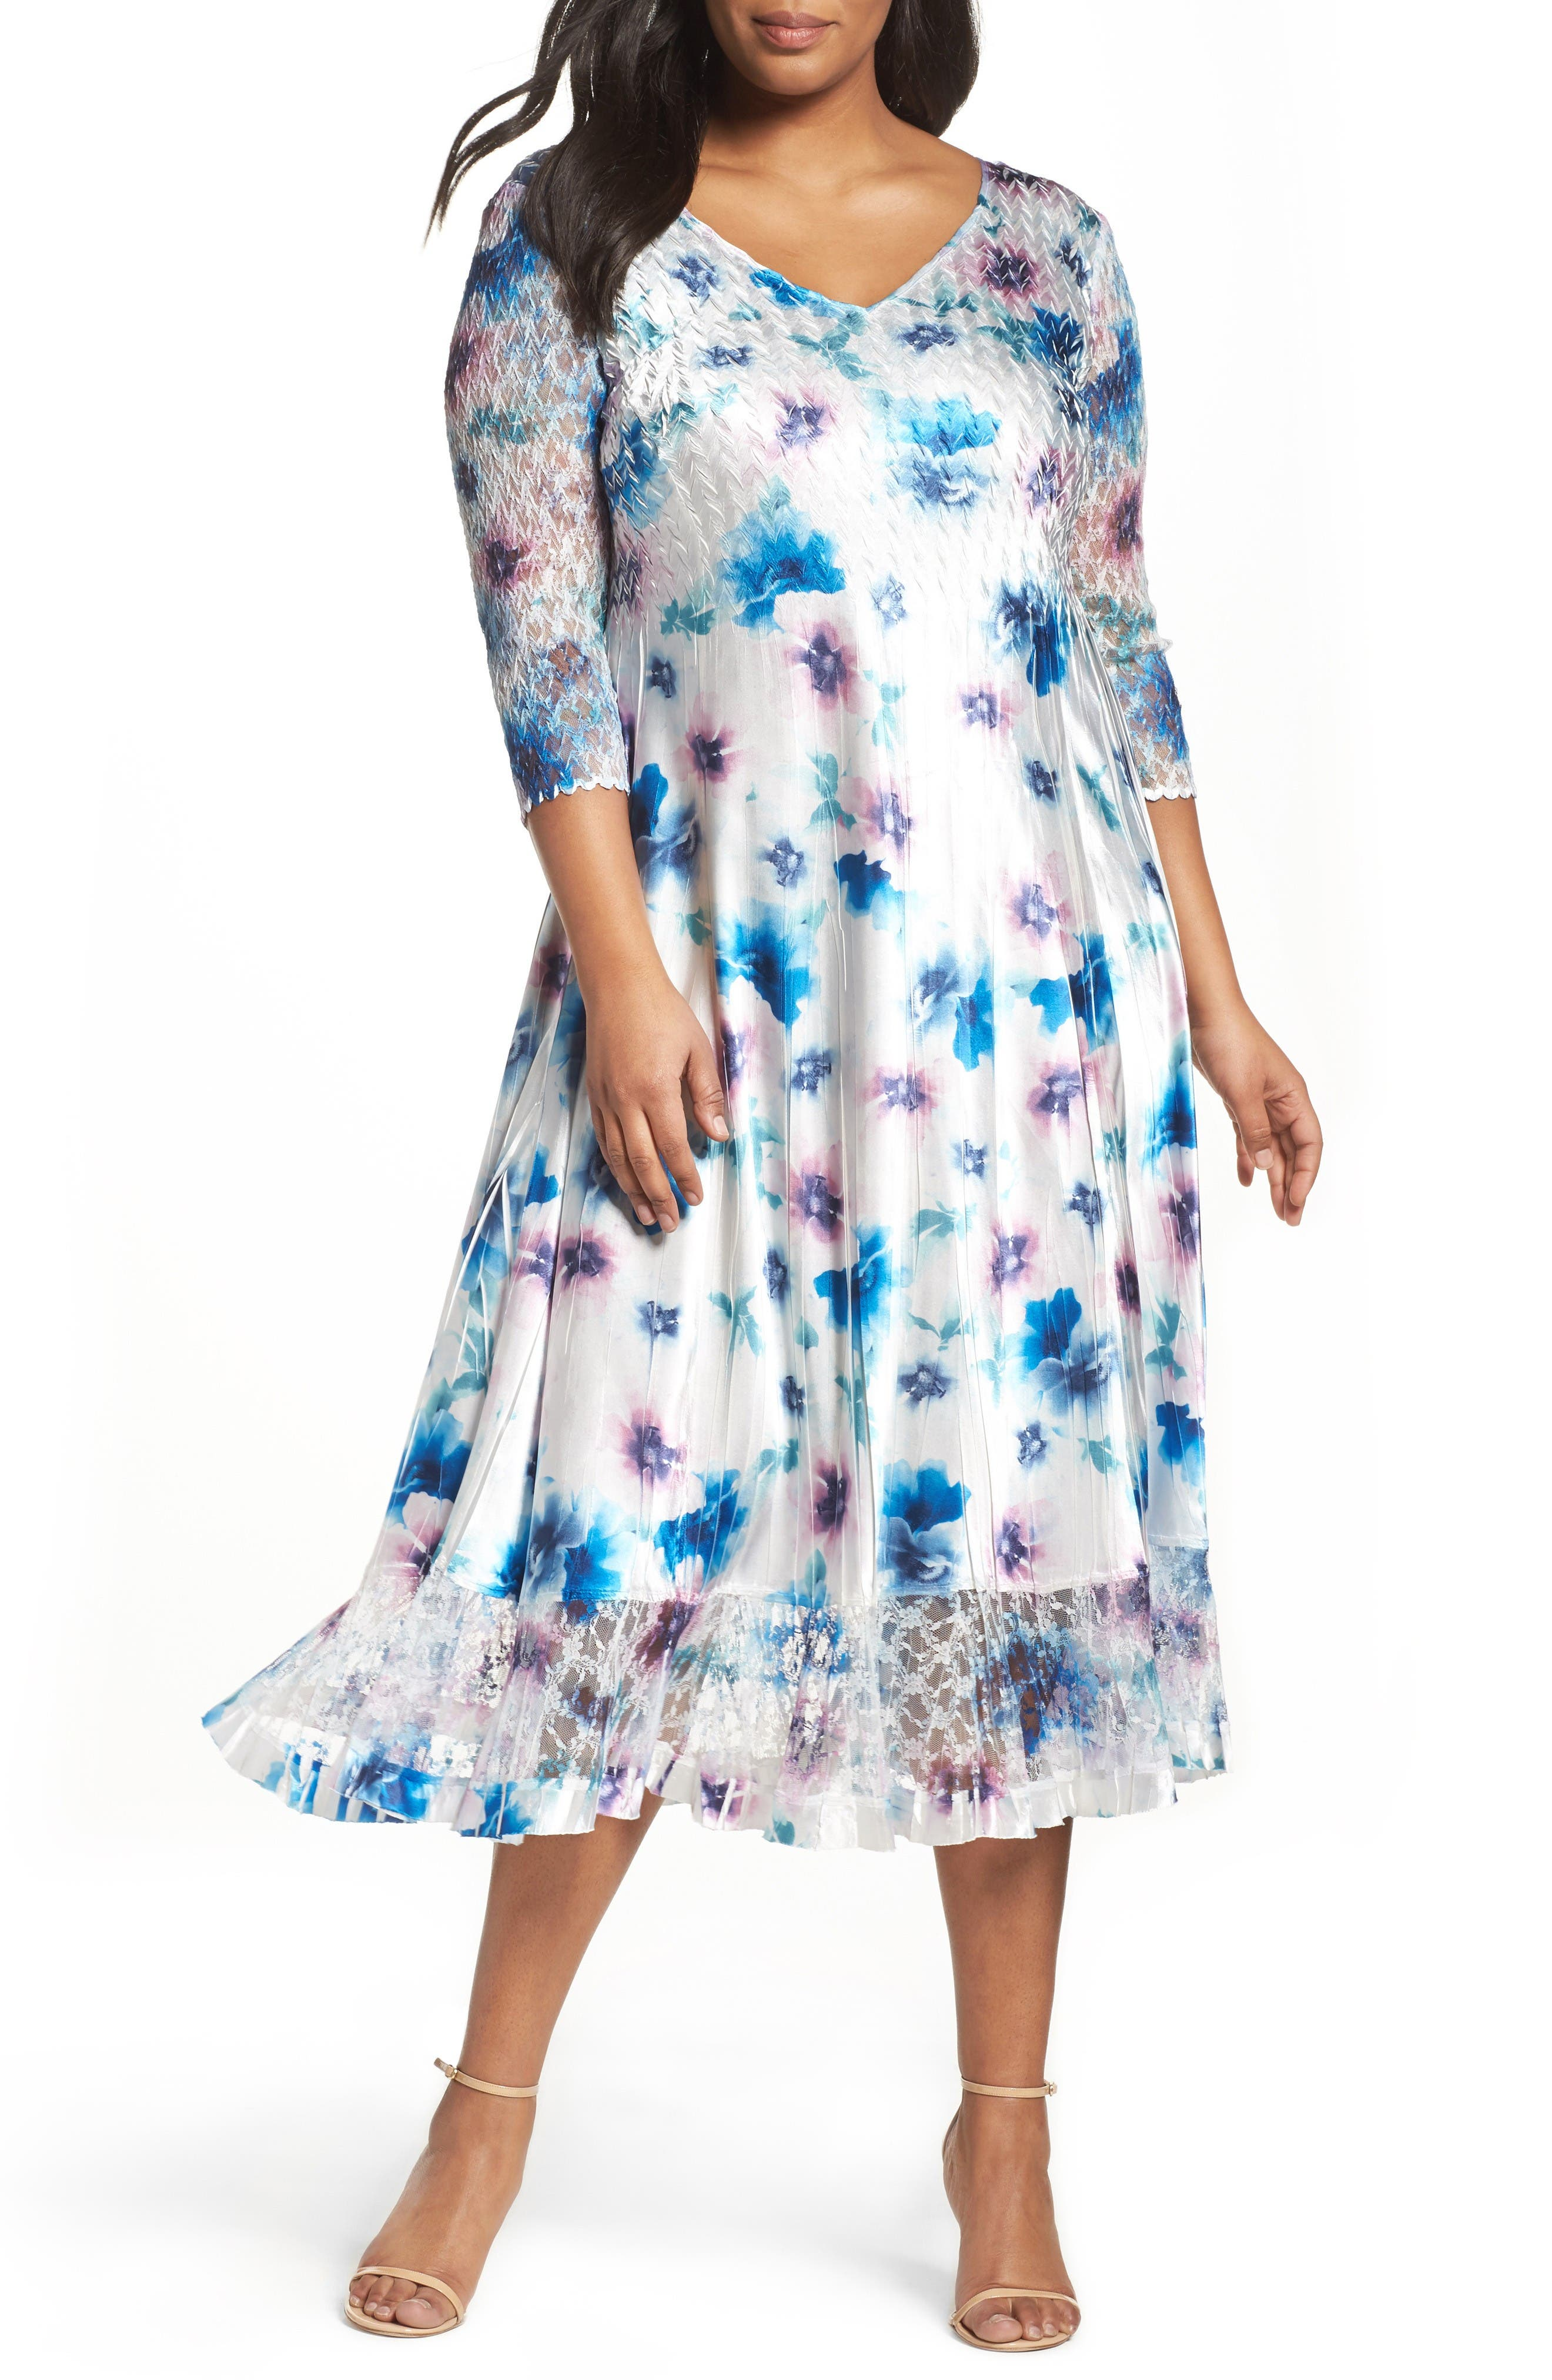 Alternate Image 1 Selected - Komarov Floral Charmeuse & Chiffon A-Line Dress (Plus Size)